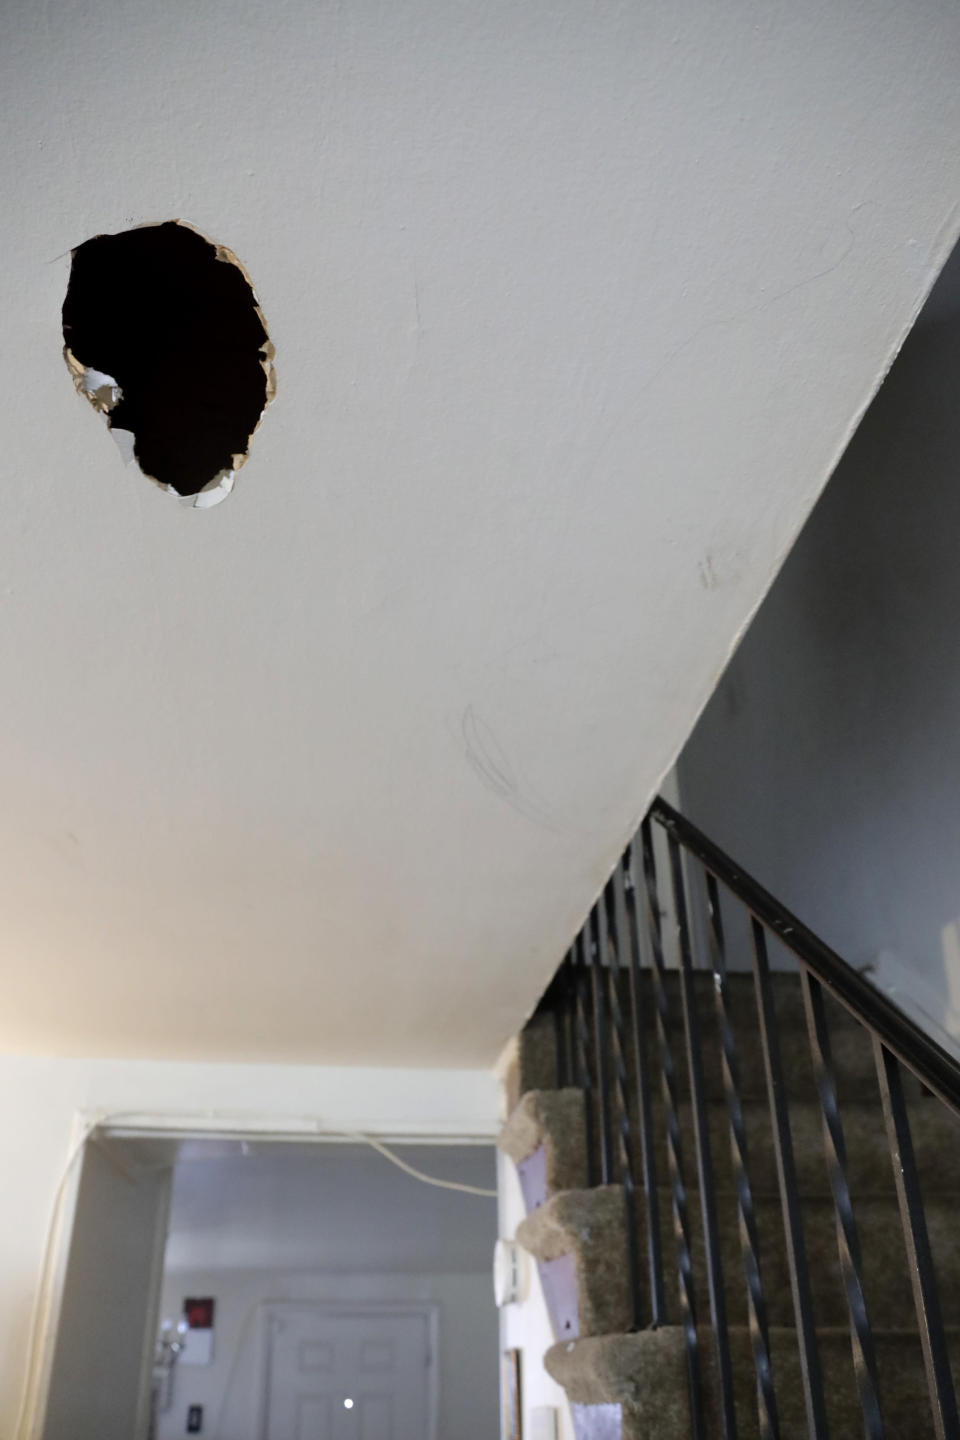 A hole is seen on the ceiling of the first floor of Carrie Newson's residence at the Dutch Village apartments, Tuesday, July 30, 2019, in Baltimore. Newson has complained to management about mice and mold in her home but the issues have yet to be fixed. The apartment complex is owned by Jared Kushner, son-in-law of President Donald Trump. (AP Photo/Julio Cortez)